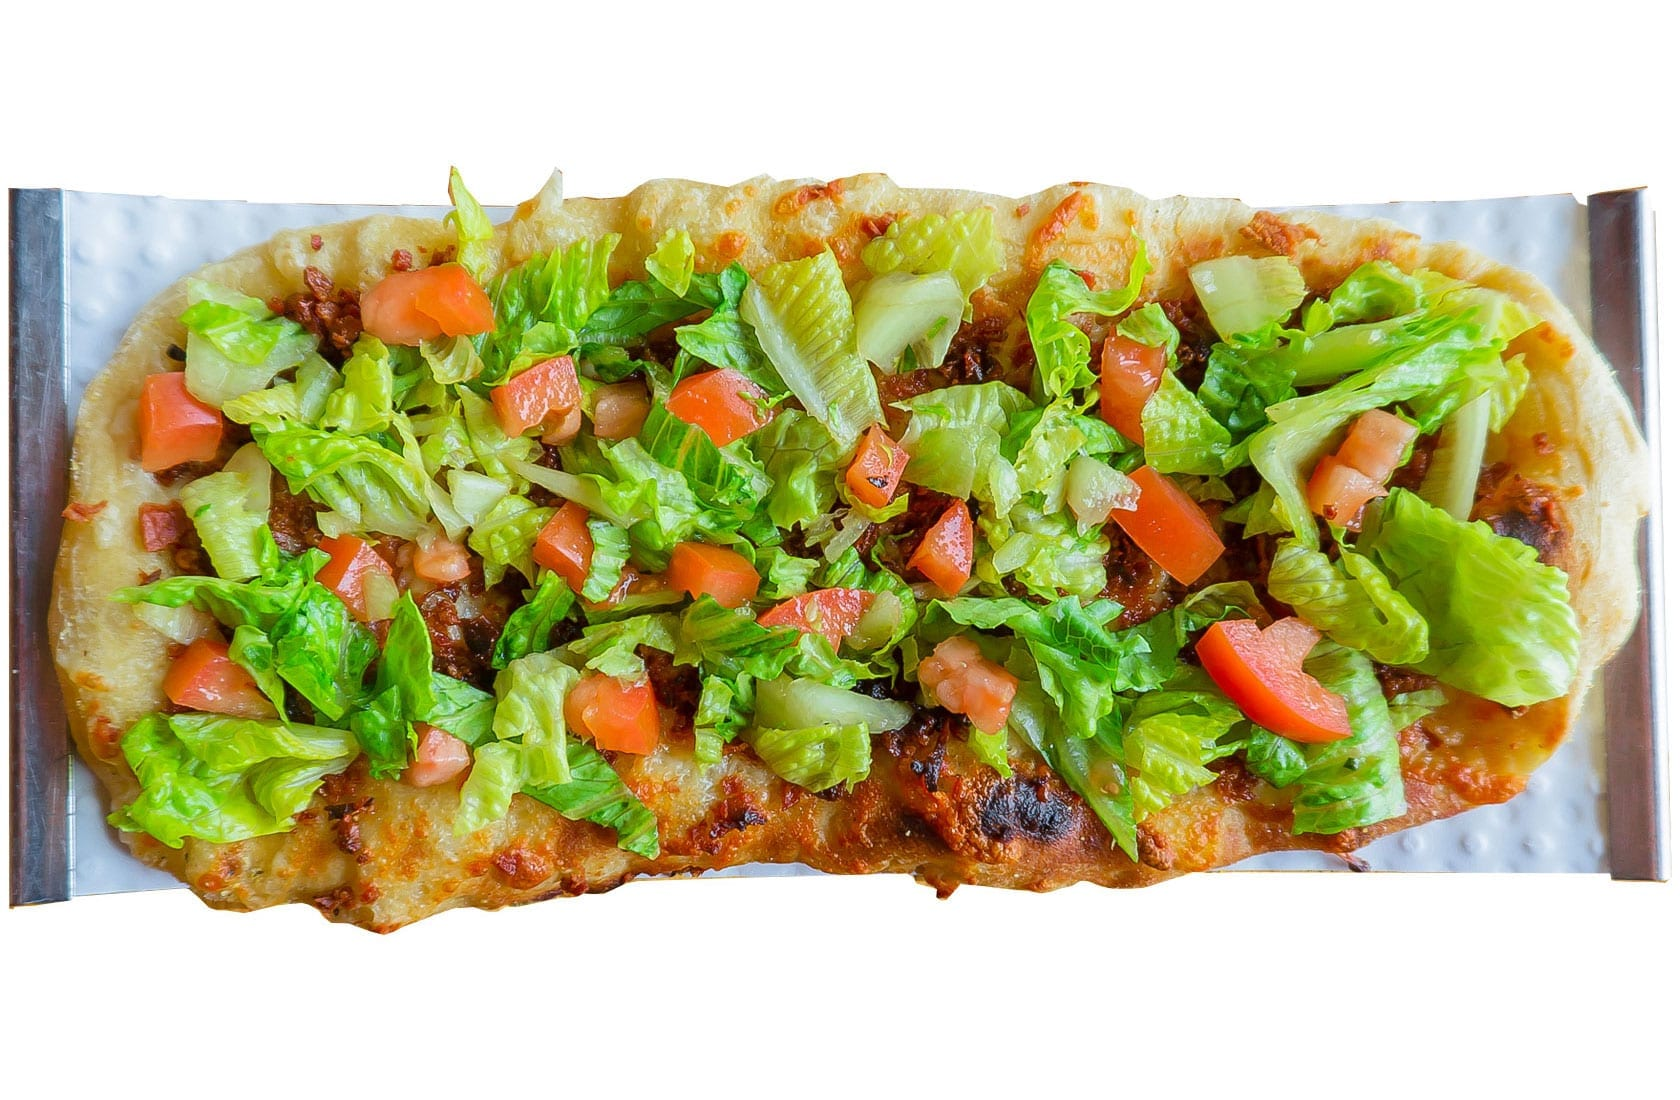 Crushed Red BLT Urban Crafted Pizza